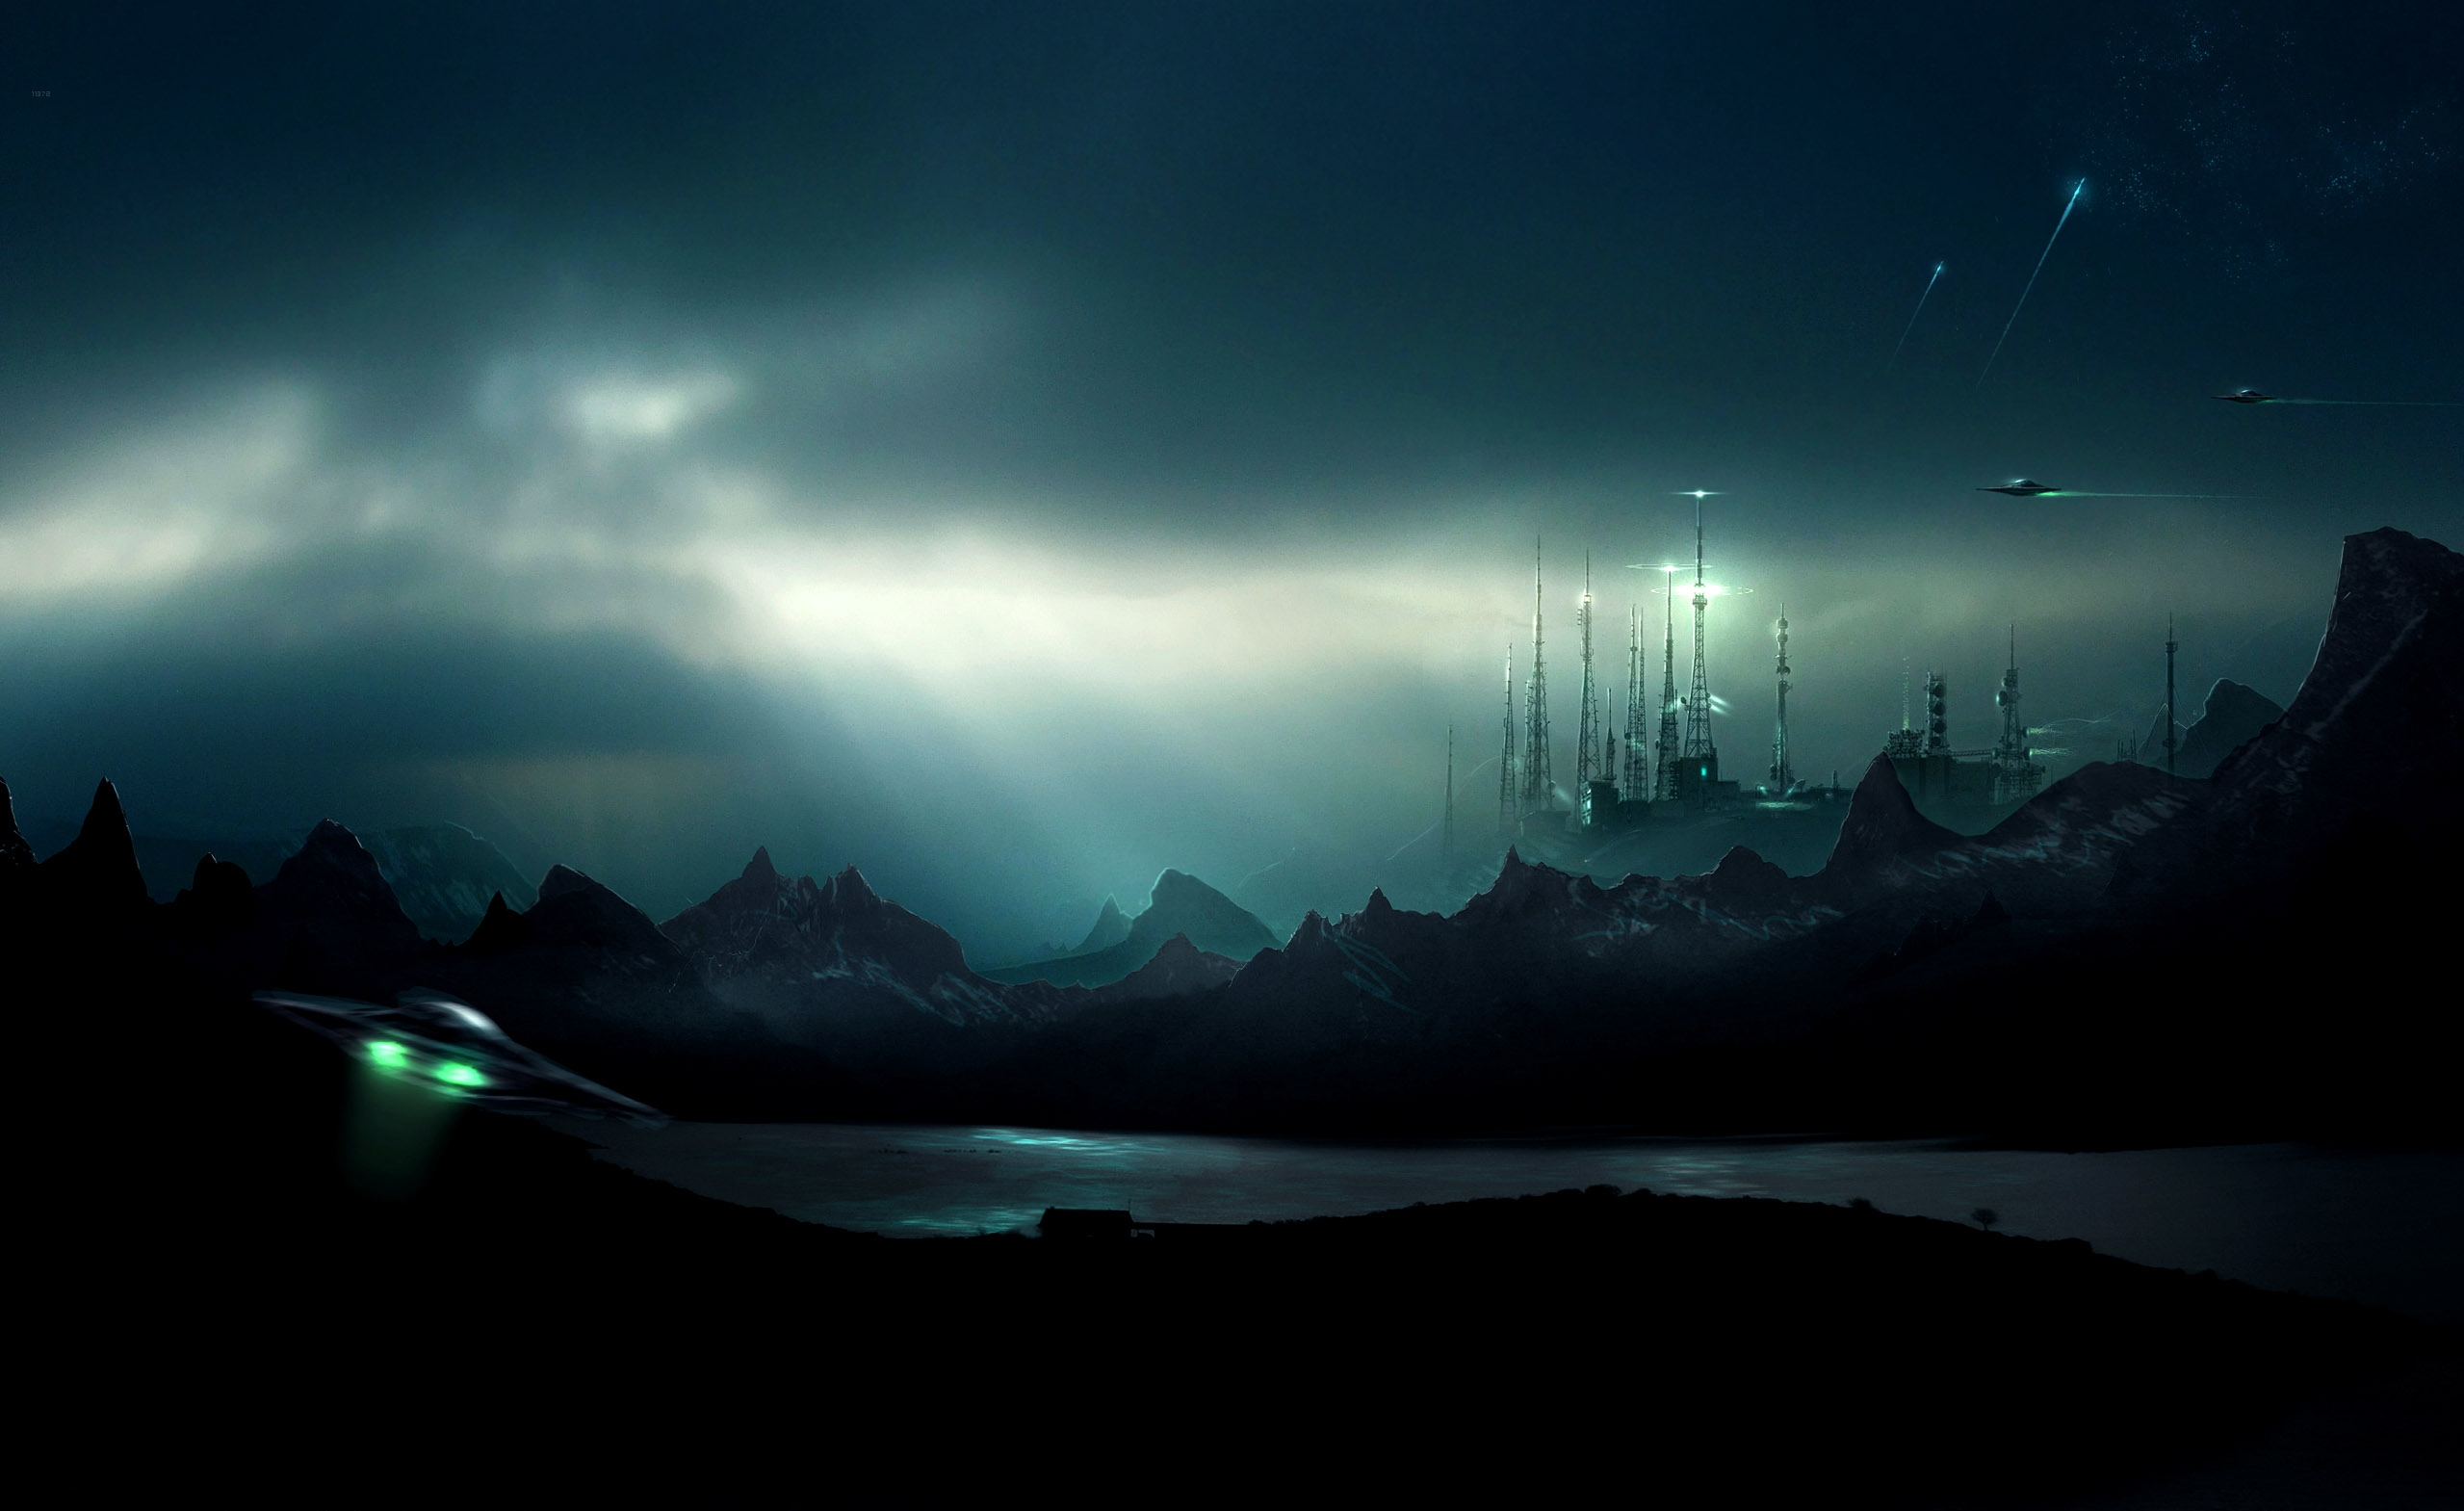 Free Download 23 Futuristic Hd Wallpapers Backgrounds 2559x1569